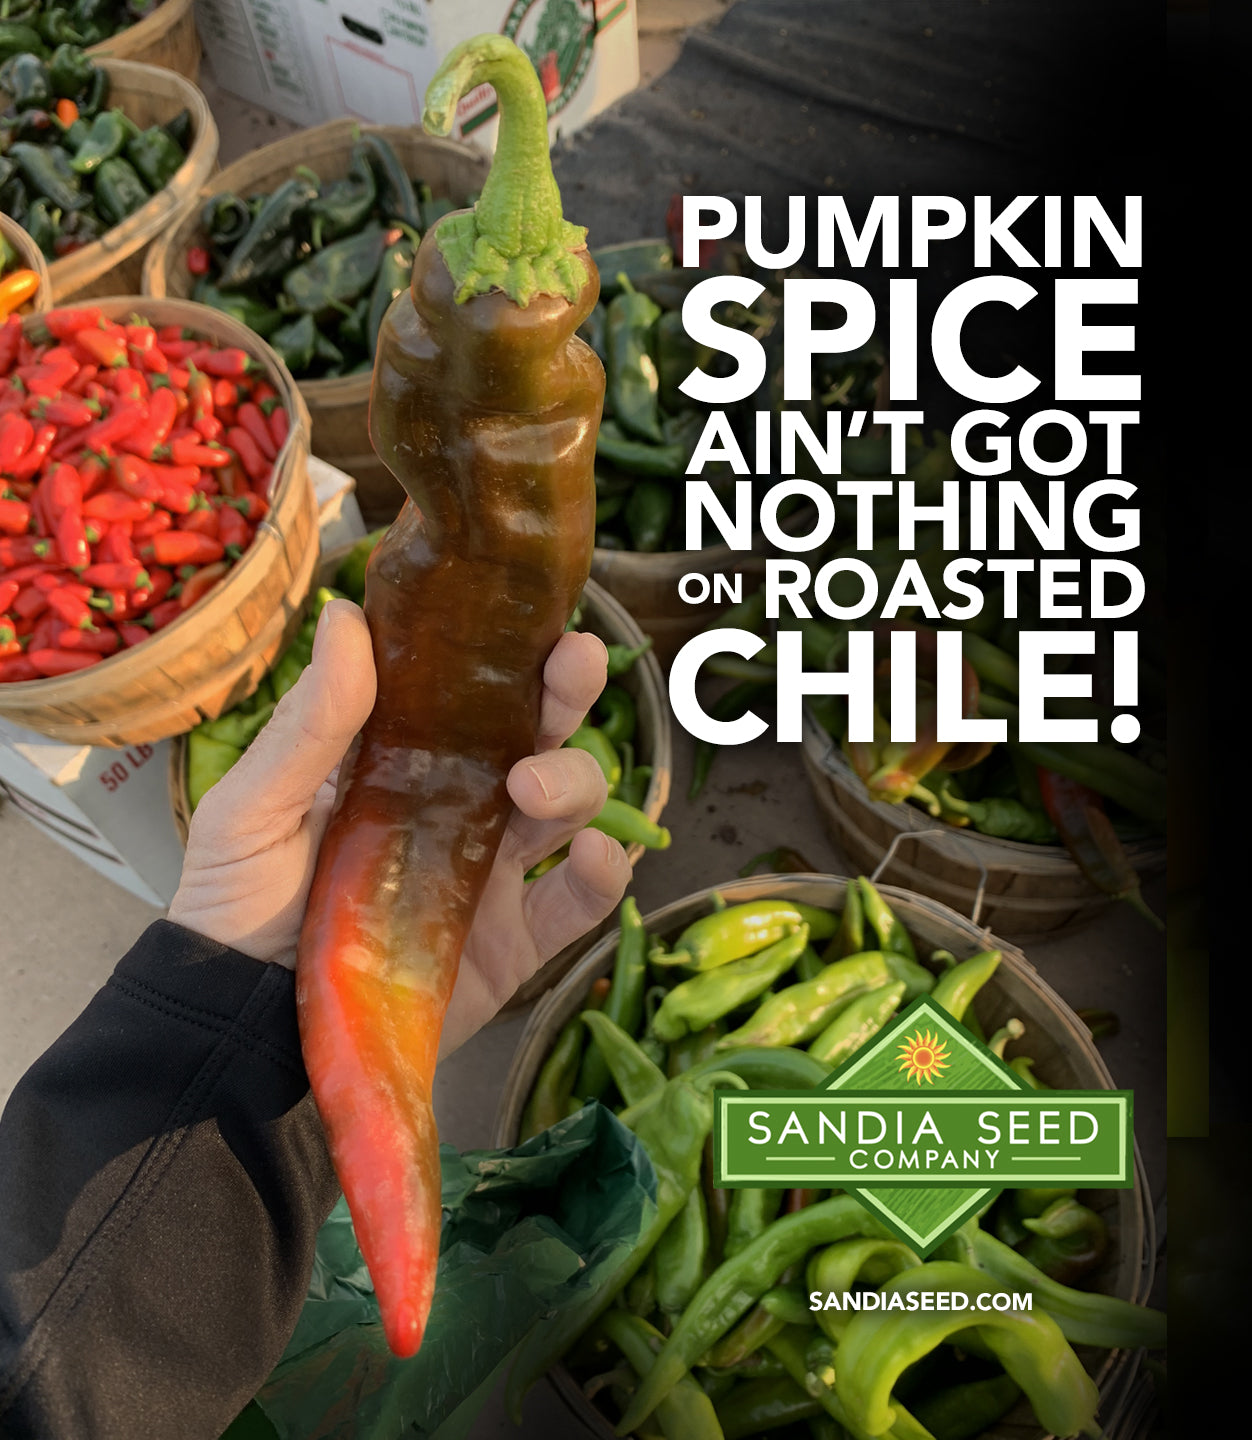 Pumpkin Spice Ain't Got Nothing on Roasted Chile!